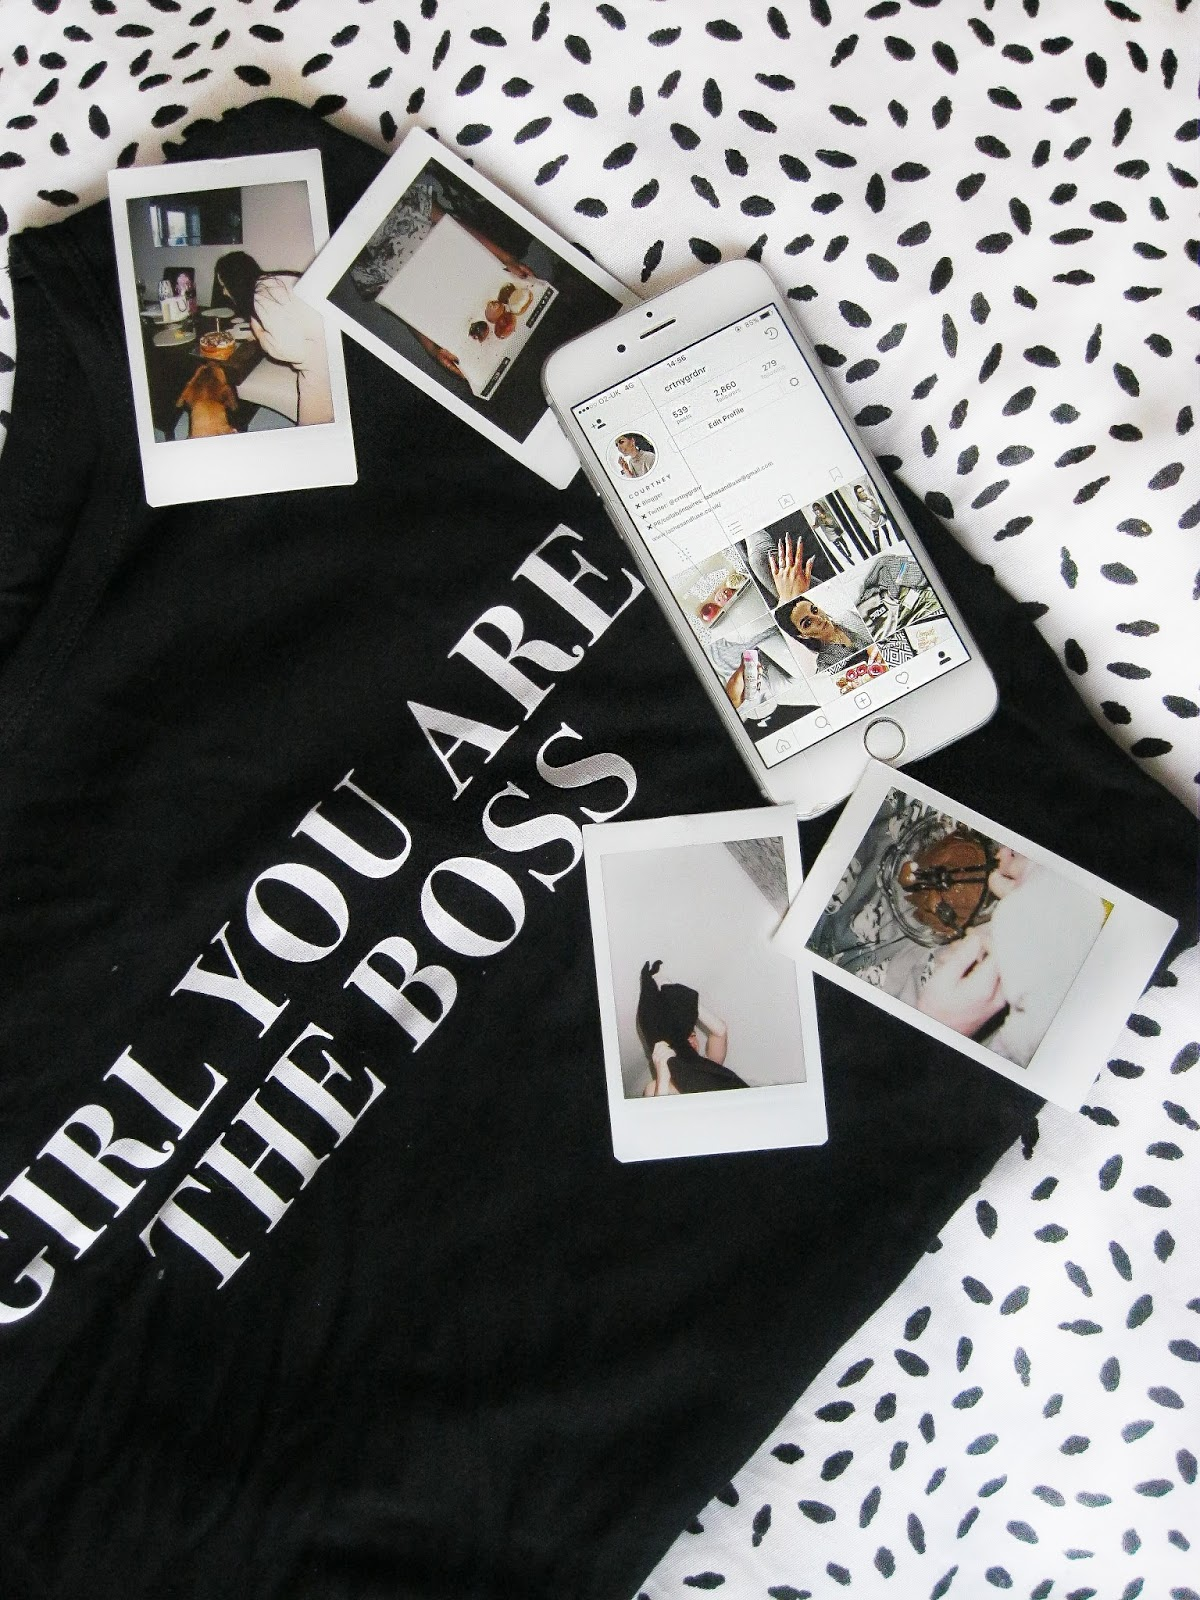 GIRL YOU ARE THE BOSS TSHIRT